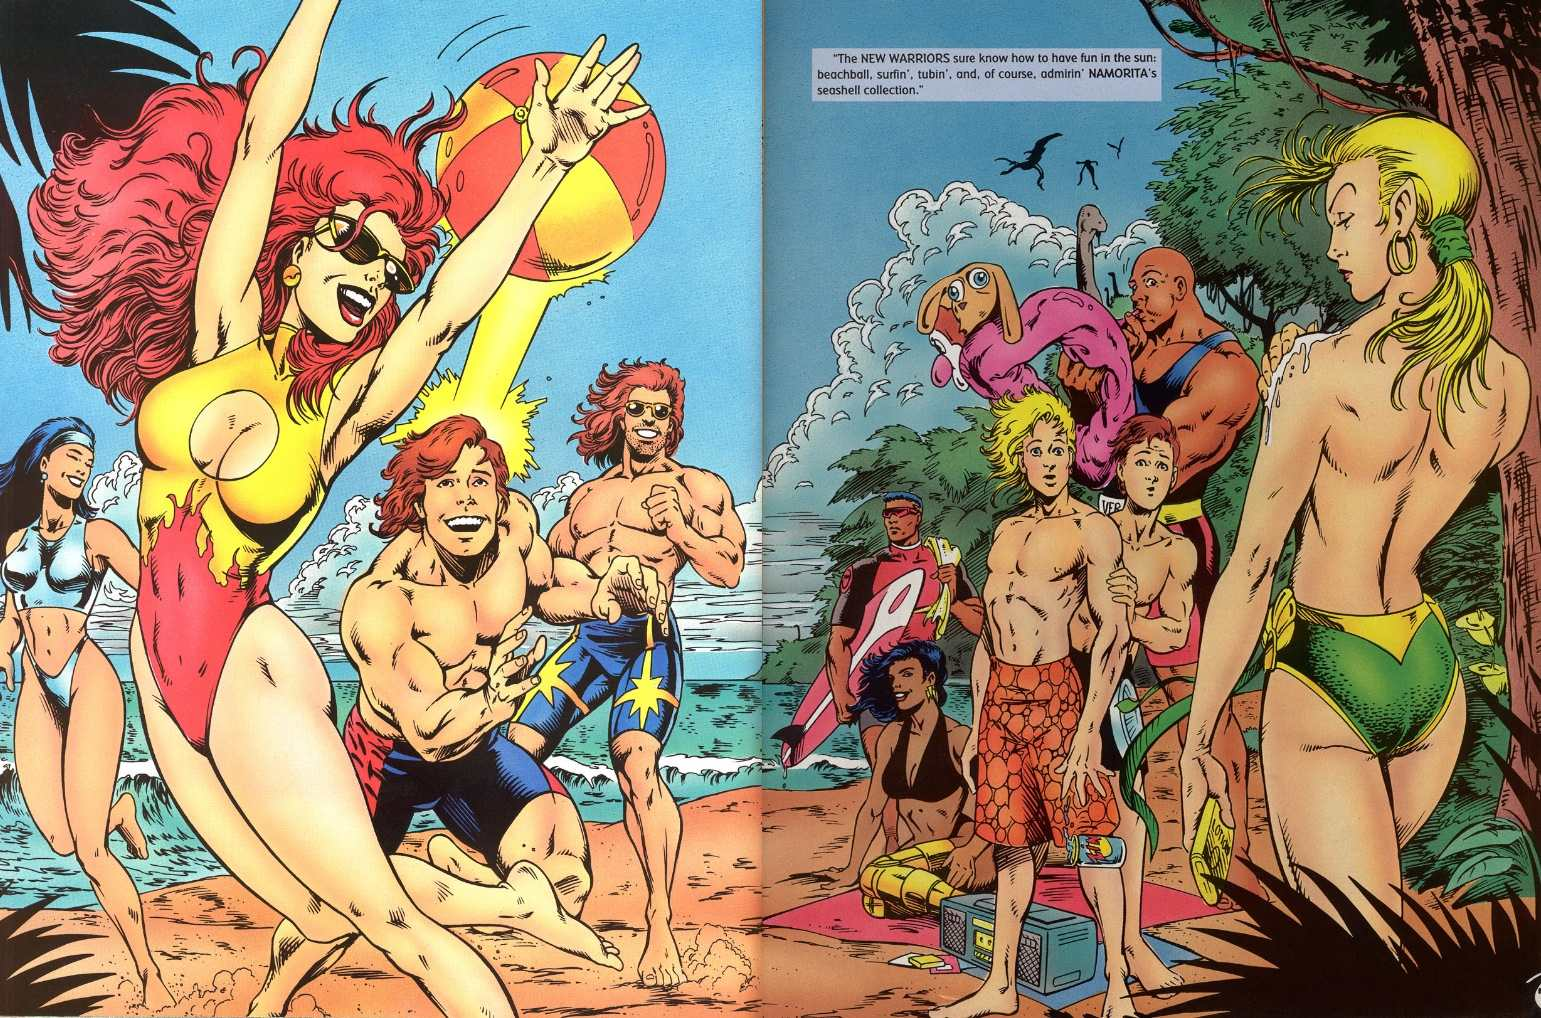 8_Marvel_Swimsuit_Special_93_New_Warriors.jpg